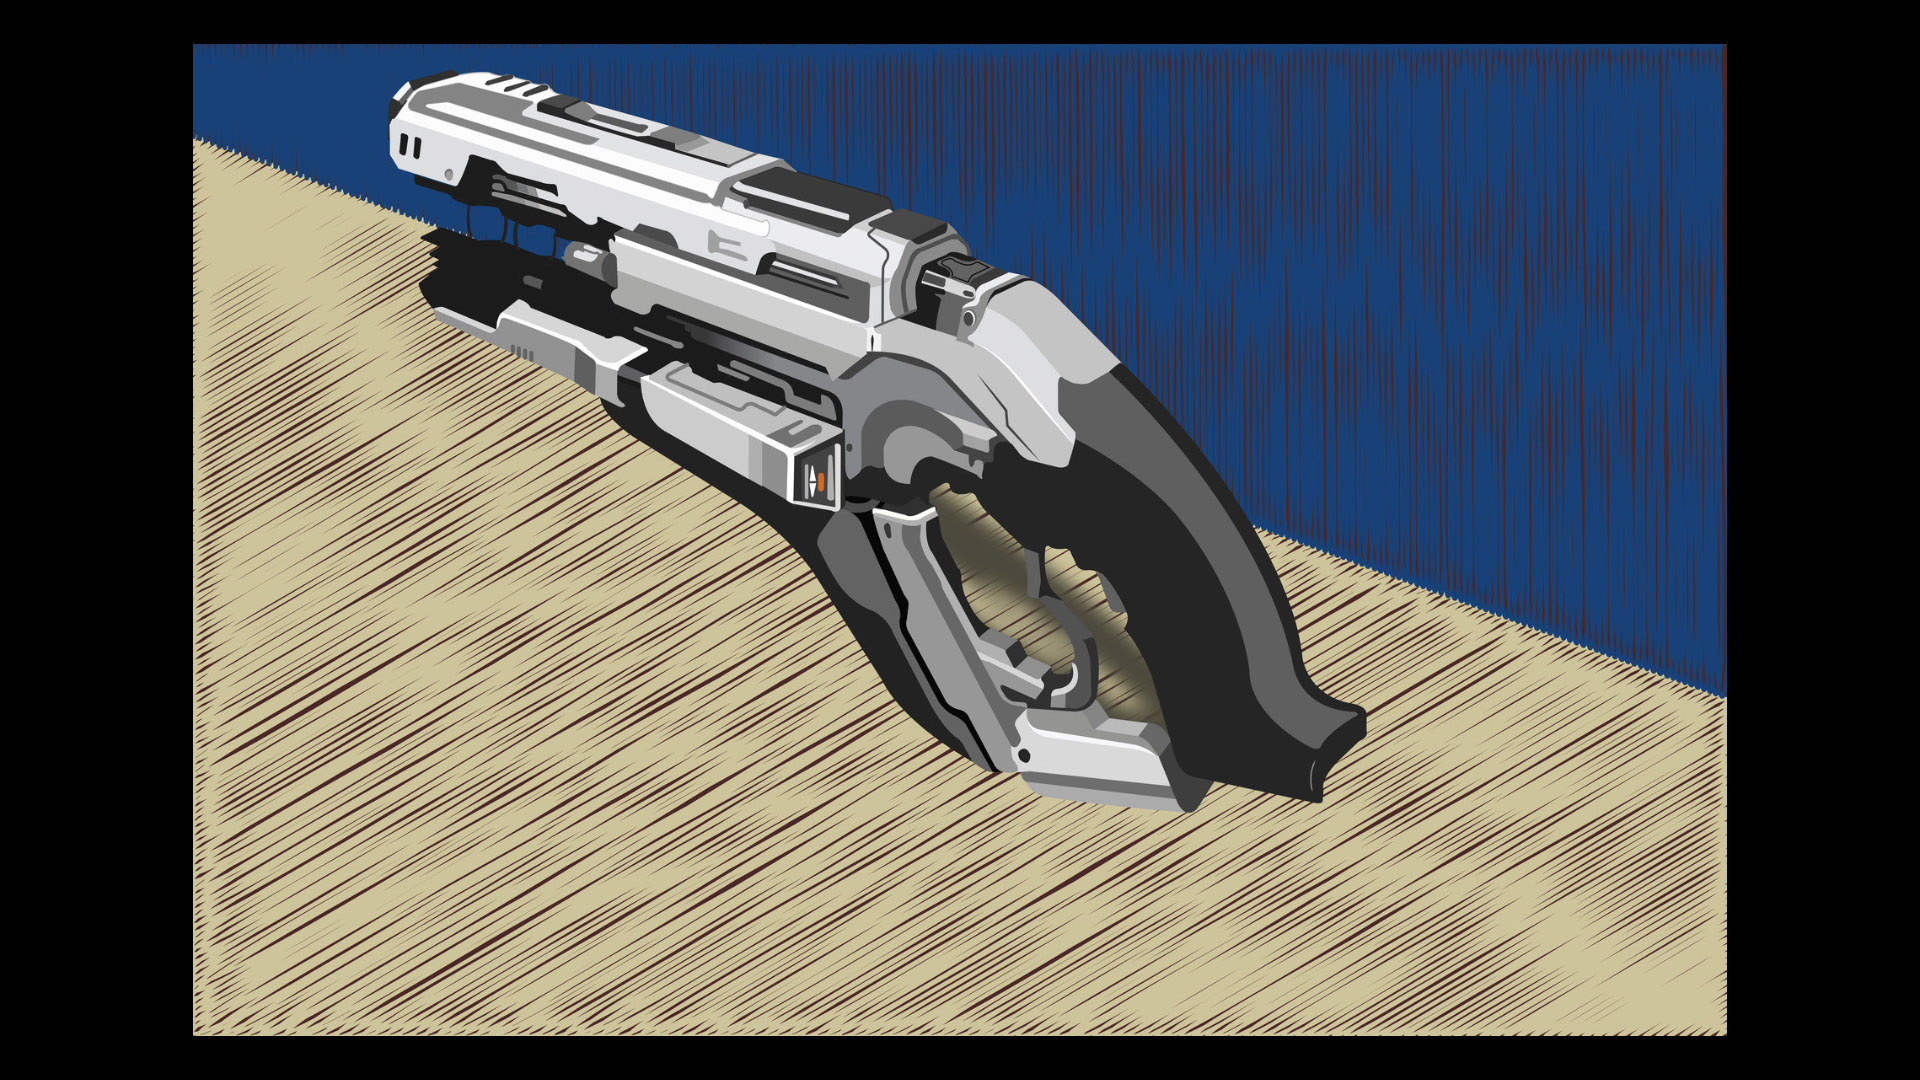 Adobe Illustration Design, Rendered from Weapon Design Illustration in Rapid Illustration Course